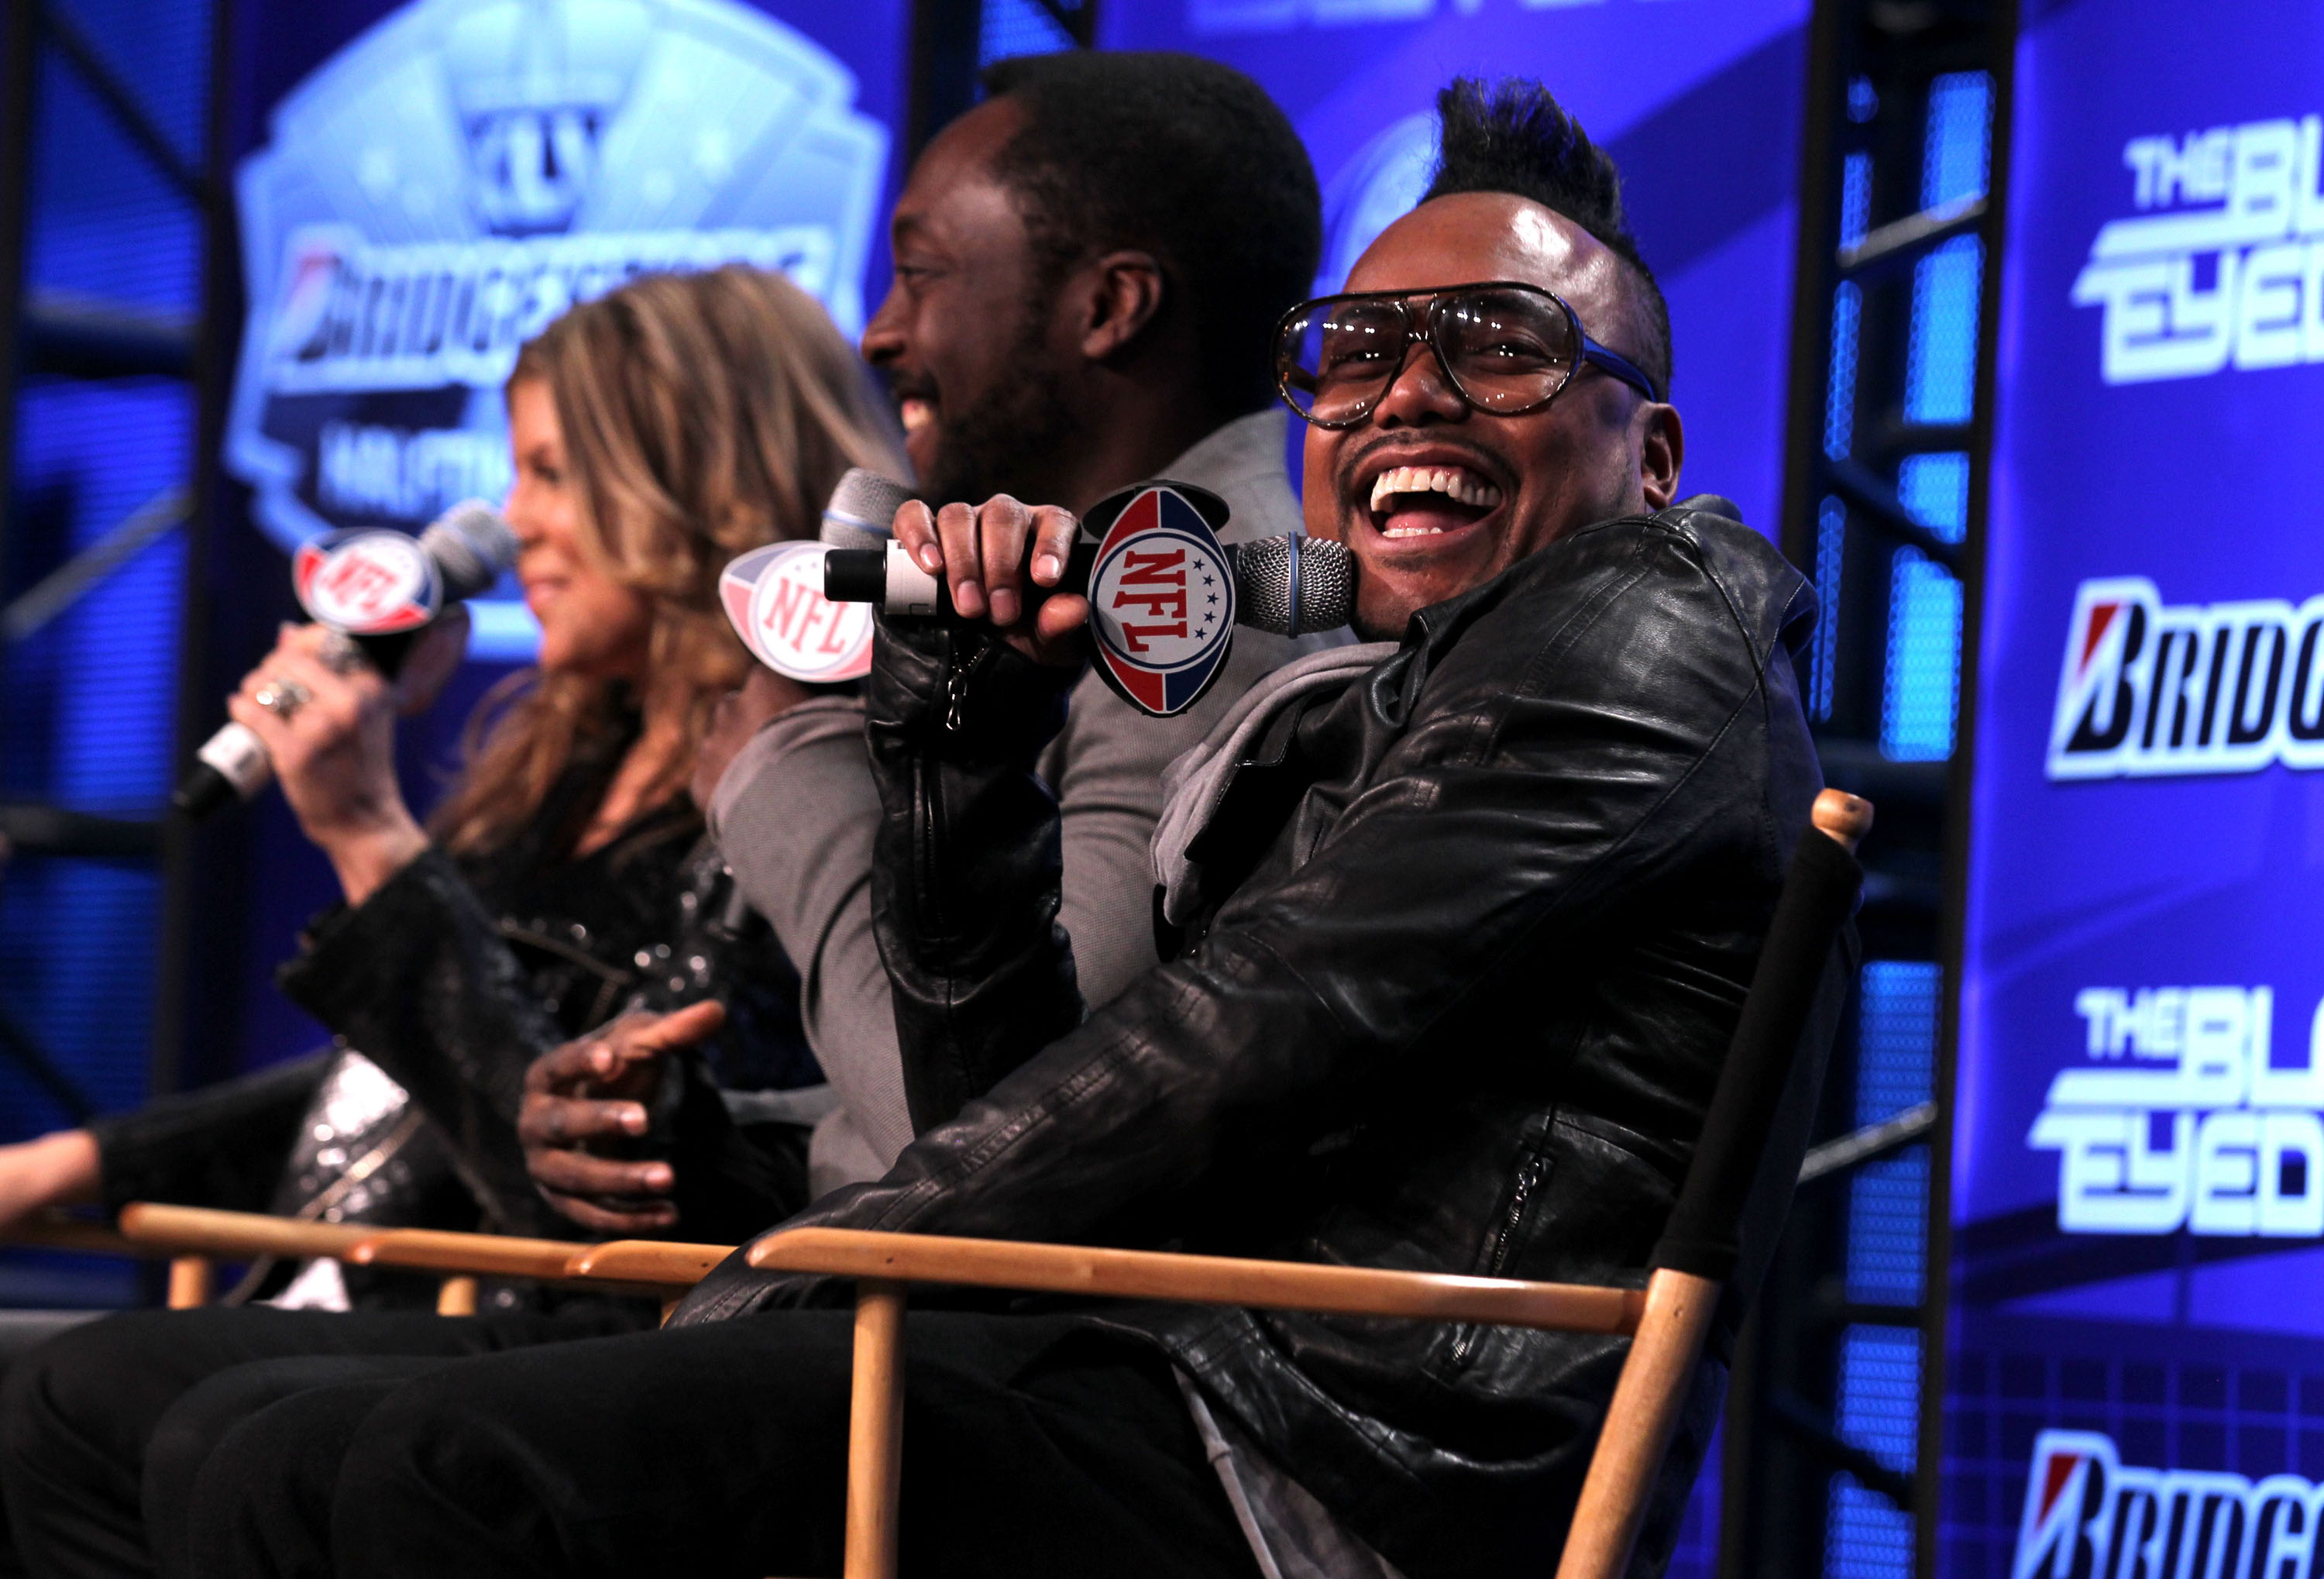 DALLAS, TX - FEBRUARY 03:  (L-R) Fergie, will.i.am and apl.de.ap of the Black Eyed Peas speak at the Bridgestone Super Bowl XLV Halftime Show press conference on February 3, 2011 in Dallas, Texas.  (Photo by Christopher Polk/Getty Images)